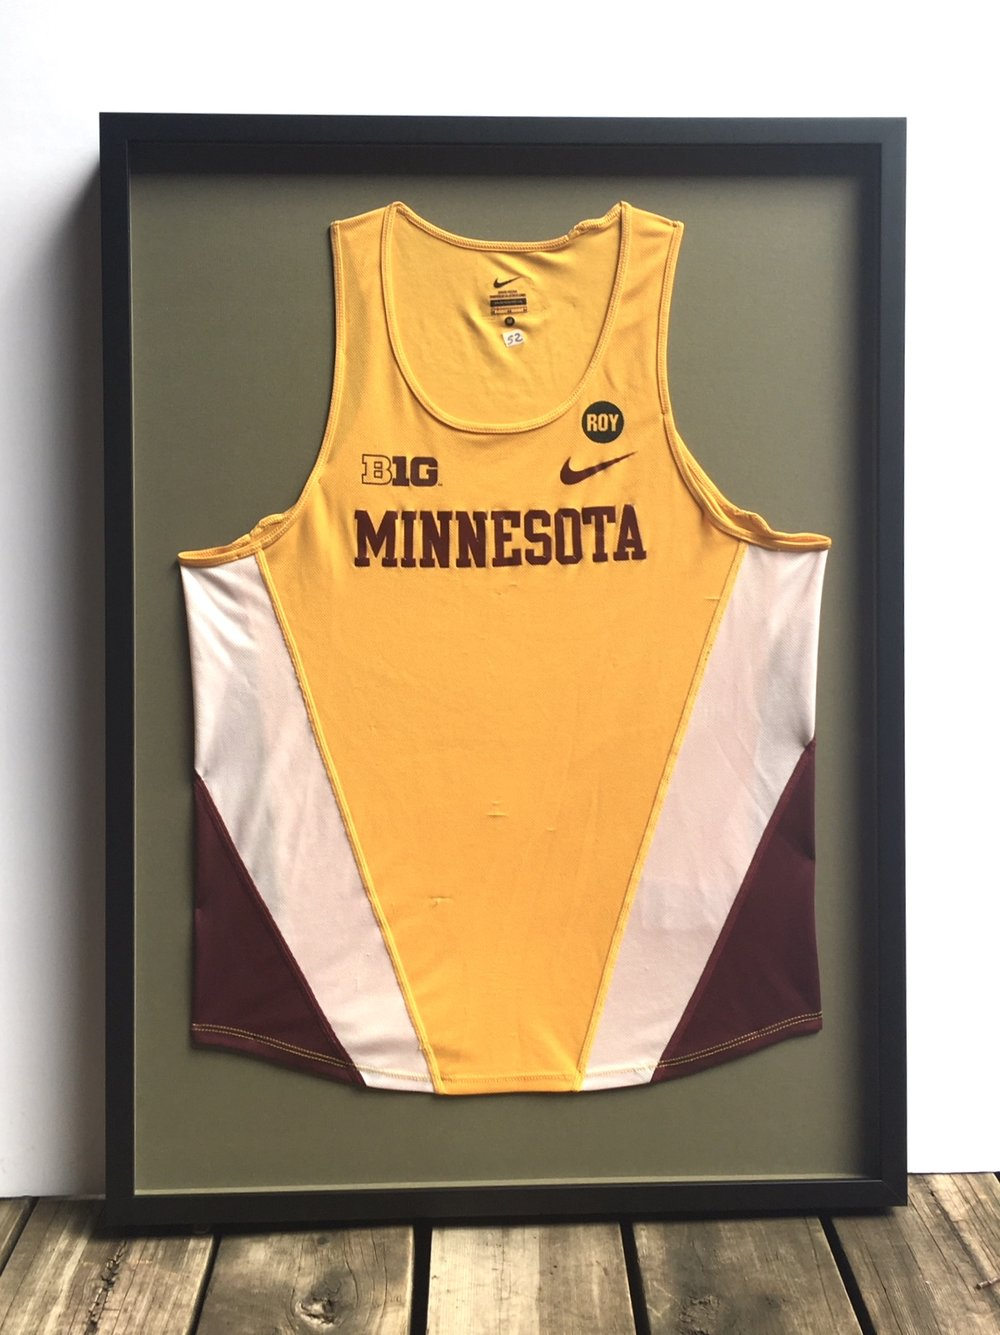 University of Minnesota track jersey shadowboxed in black.